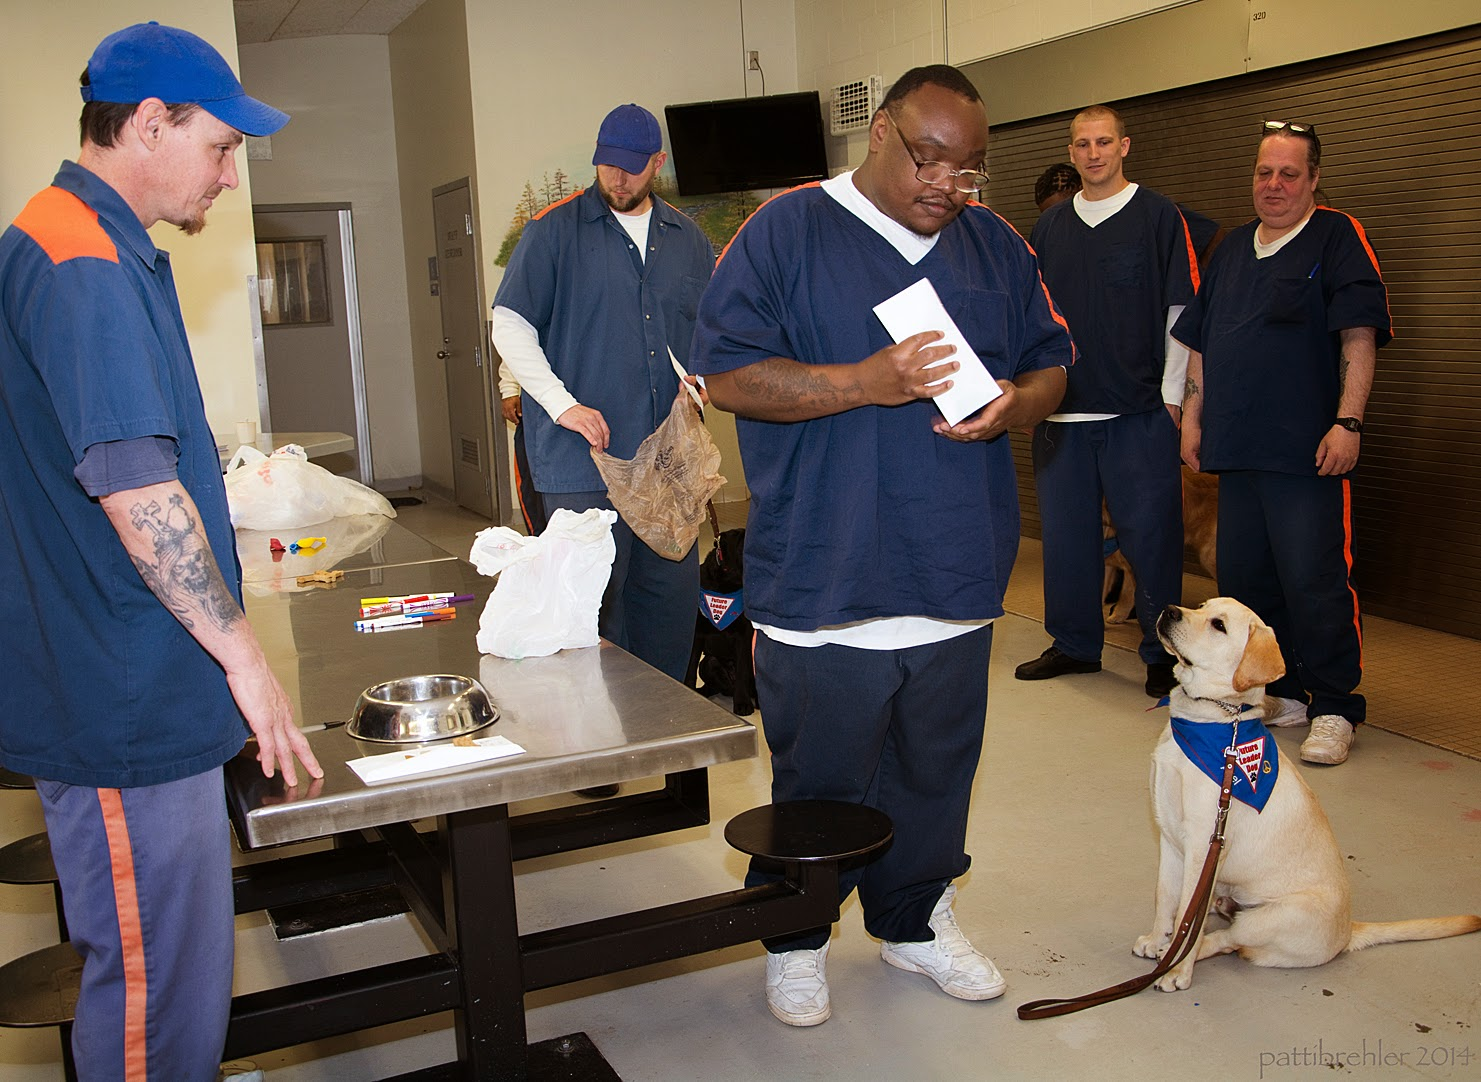 Five men dressed in the prison blue uniforms stand arond a steel lunch table. The man on the left, wearing a blue baseball cap, has his fingertips on the table with a silver stainless steel dog bowl in front of him on the table. The afrcan american man standing opposite him is looking down at a white envelope in his hands. A yellow lab puppy is sitting to his left looking up at him. The puppy is wearing the blue Future Leader Dog bandana and his leash is hanging on the ground. Three men in the background are watching the dog. There are white plastic shopping bags on the table.